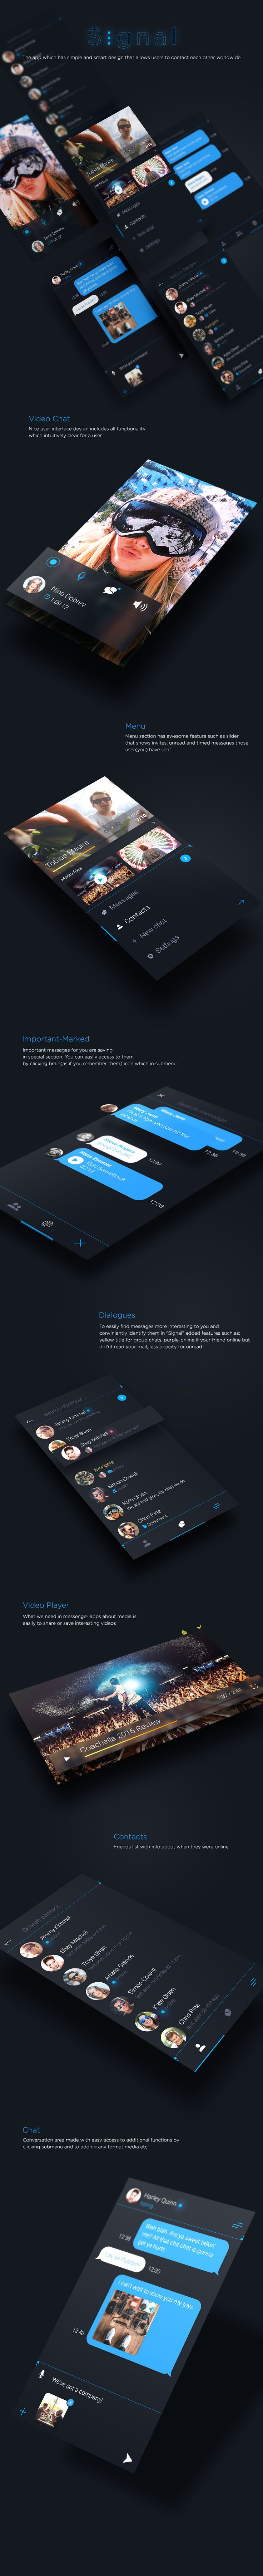 Signal – Messenger AppIt contains 7 unique PSD files fully editables. There are amazing elements and design. It's perfect for iOS. Use for iPhone App design. Colorfull style and dimensions can be easily changed. Elements are organized in folders. Layere…